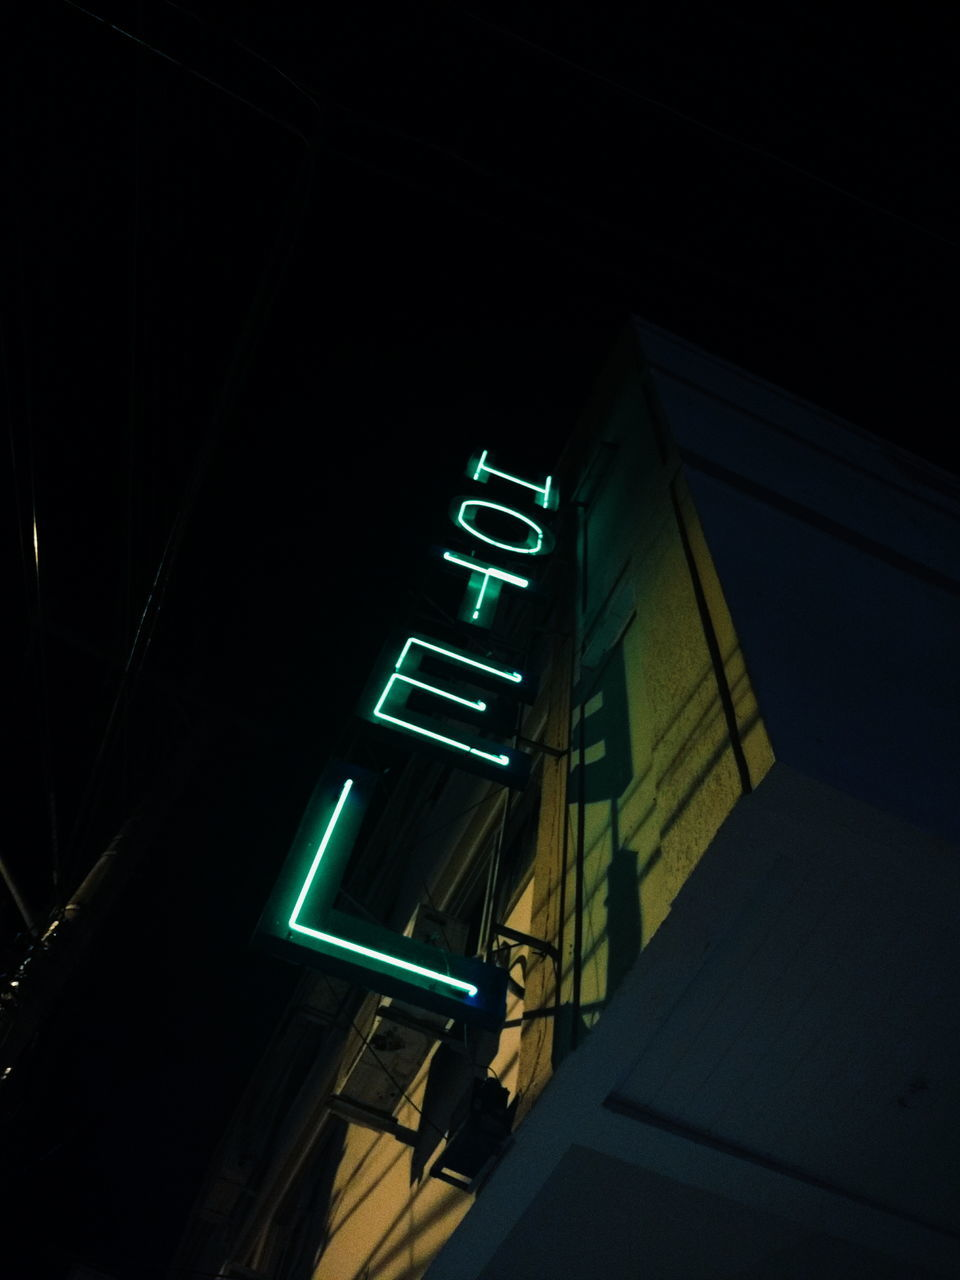 illuminated, low angle view, night, built structure, architecture, no people, green color, communication, building exterior, neon, guidance, outdoors, city, sky